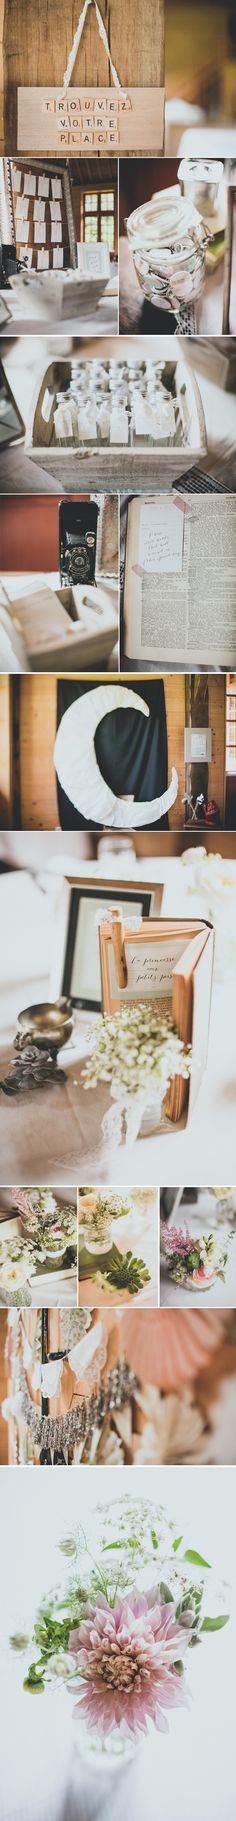 Some inspiration for your vintage wedding. Signs, letters, gold, vases, flowers.... Loved by we.artanna.be